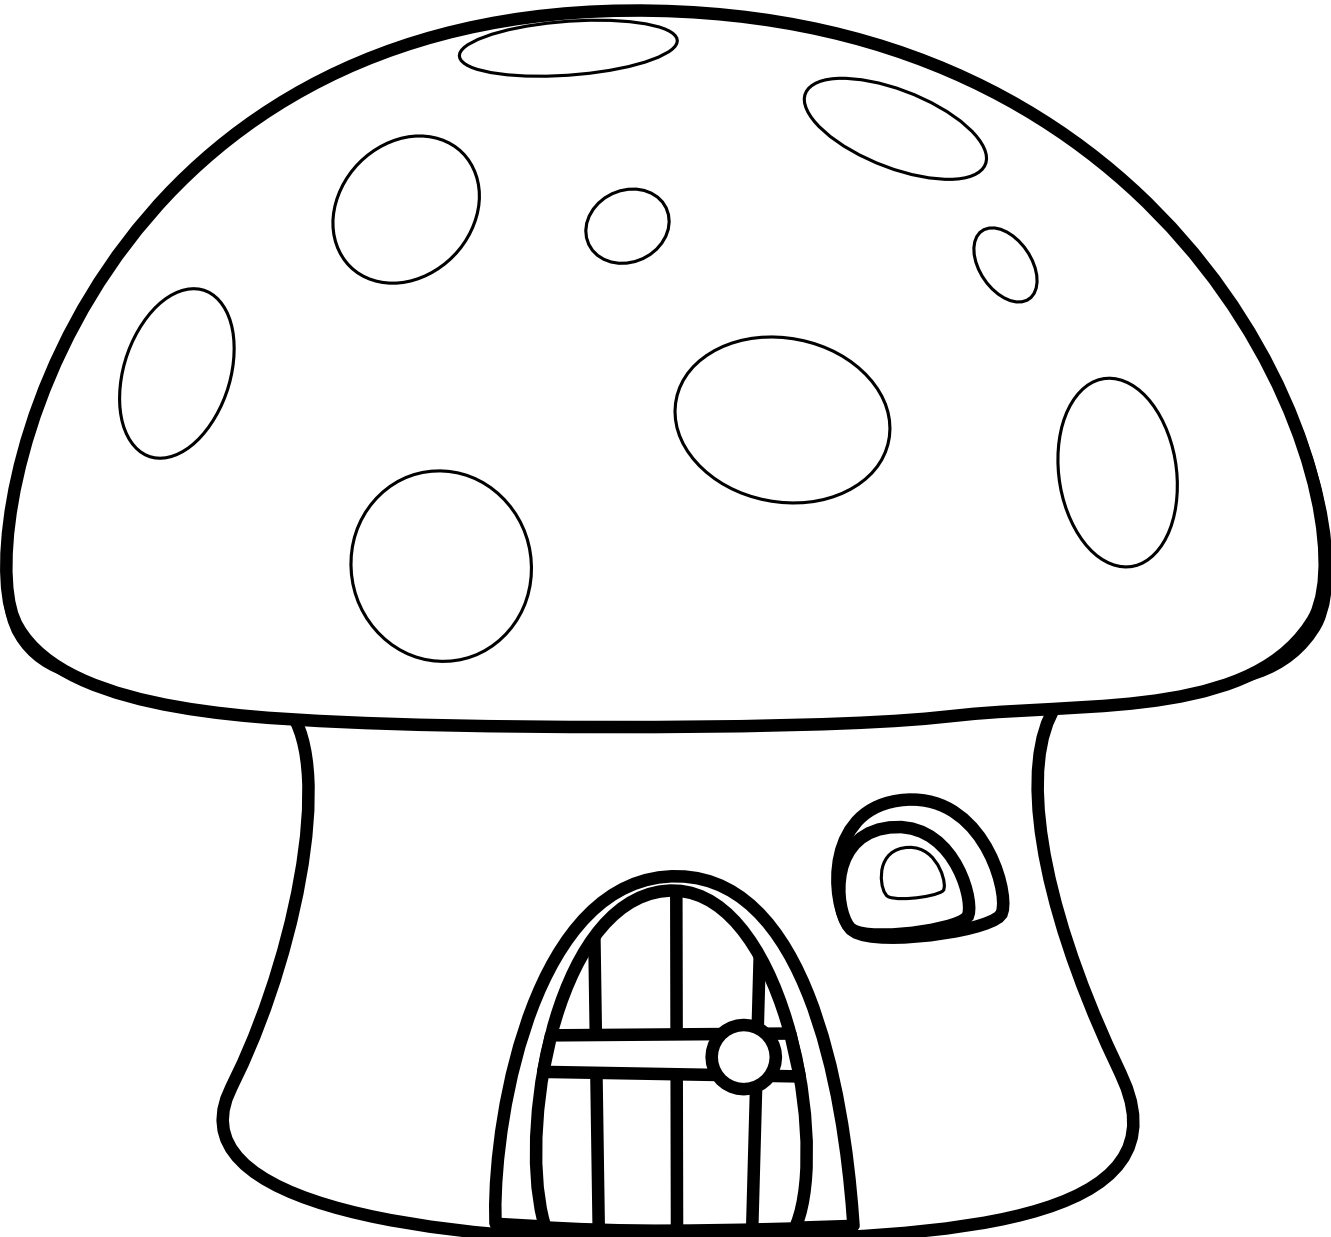 Drawing shrooms house. Collection of mushroom